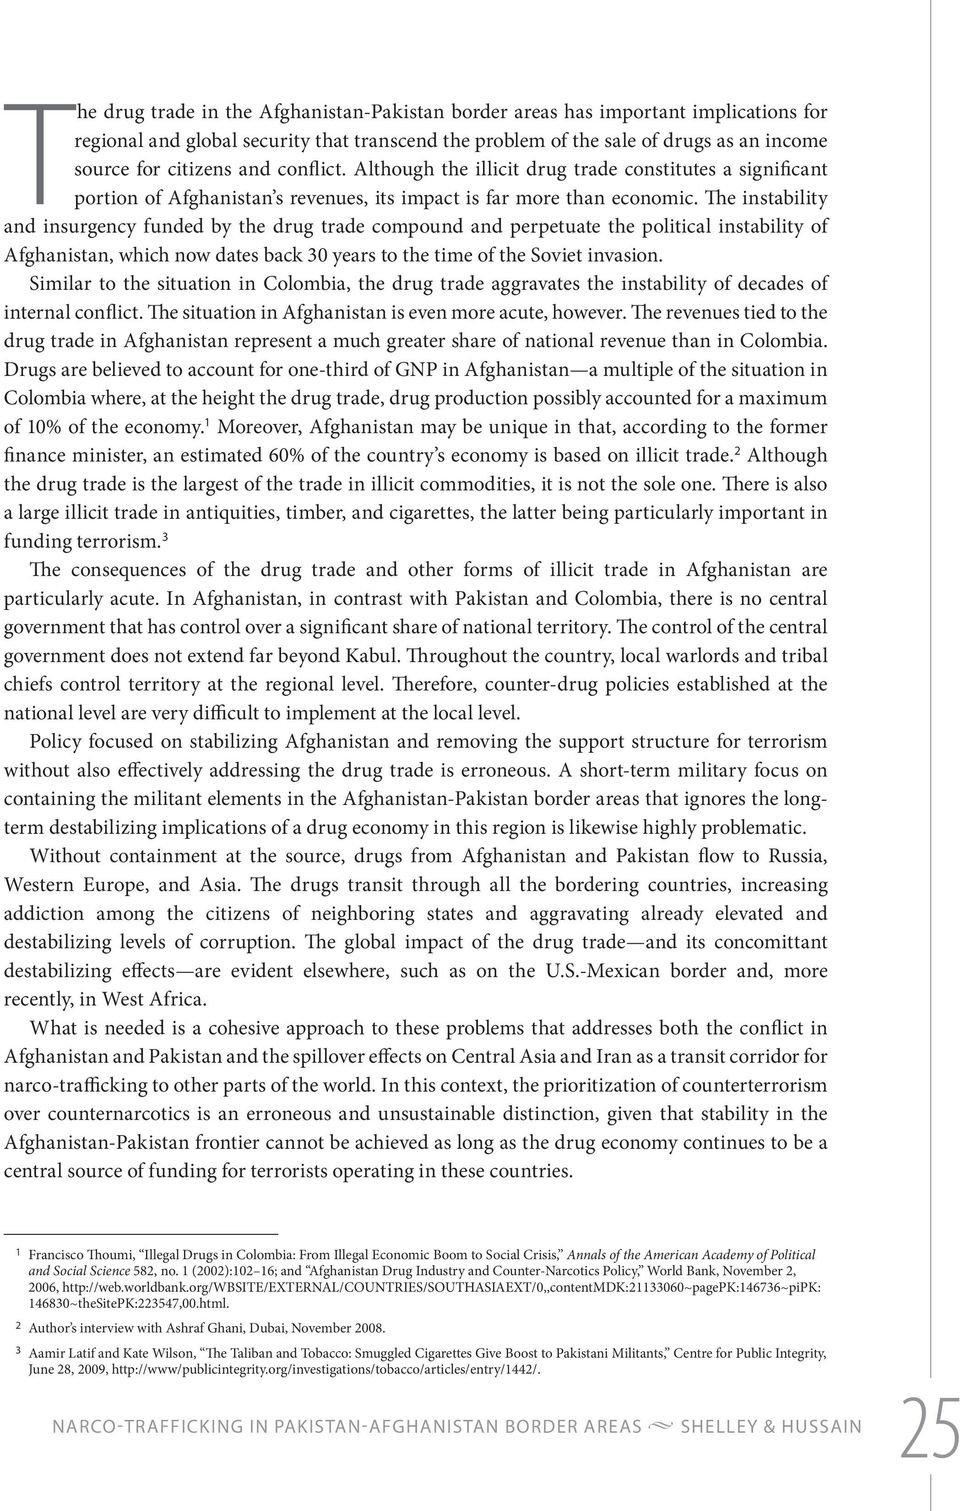 The instability and insurgency funded by the drug trade compound and perpetuate the political instability of Afghanistan, which now dates back 30 years to the time of the Soviet invasion.